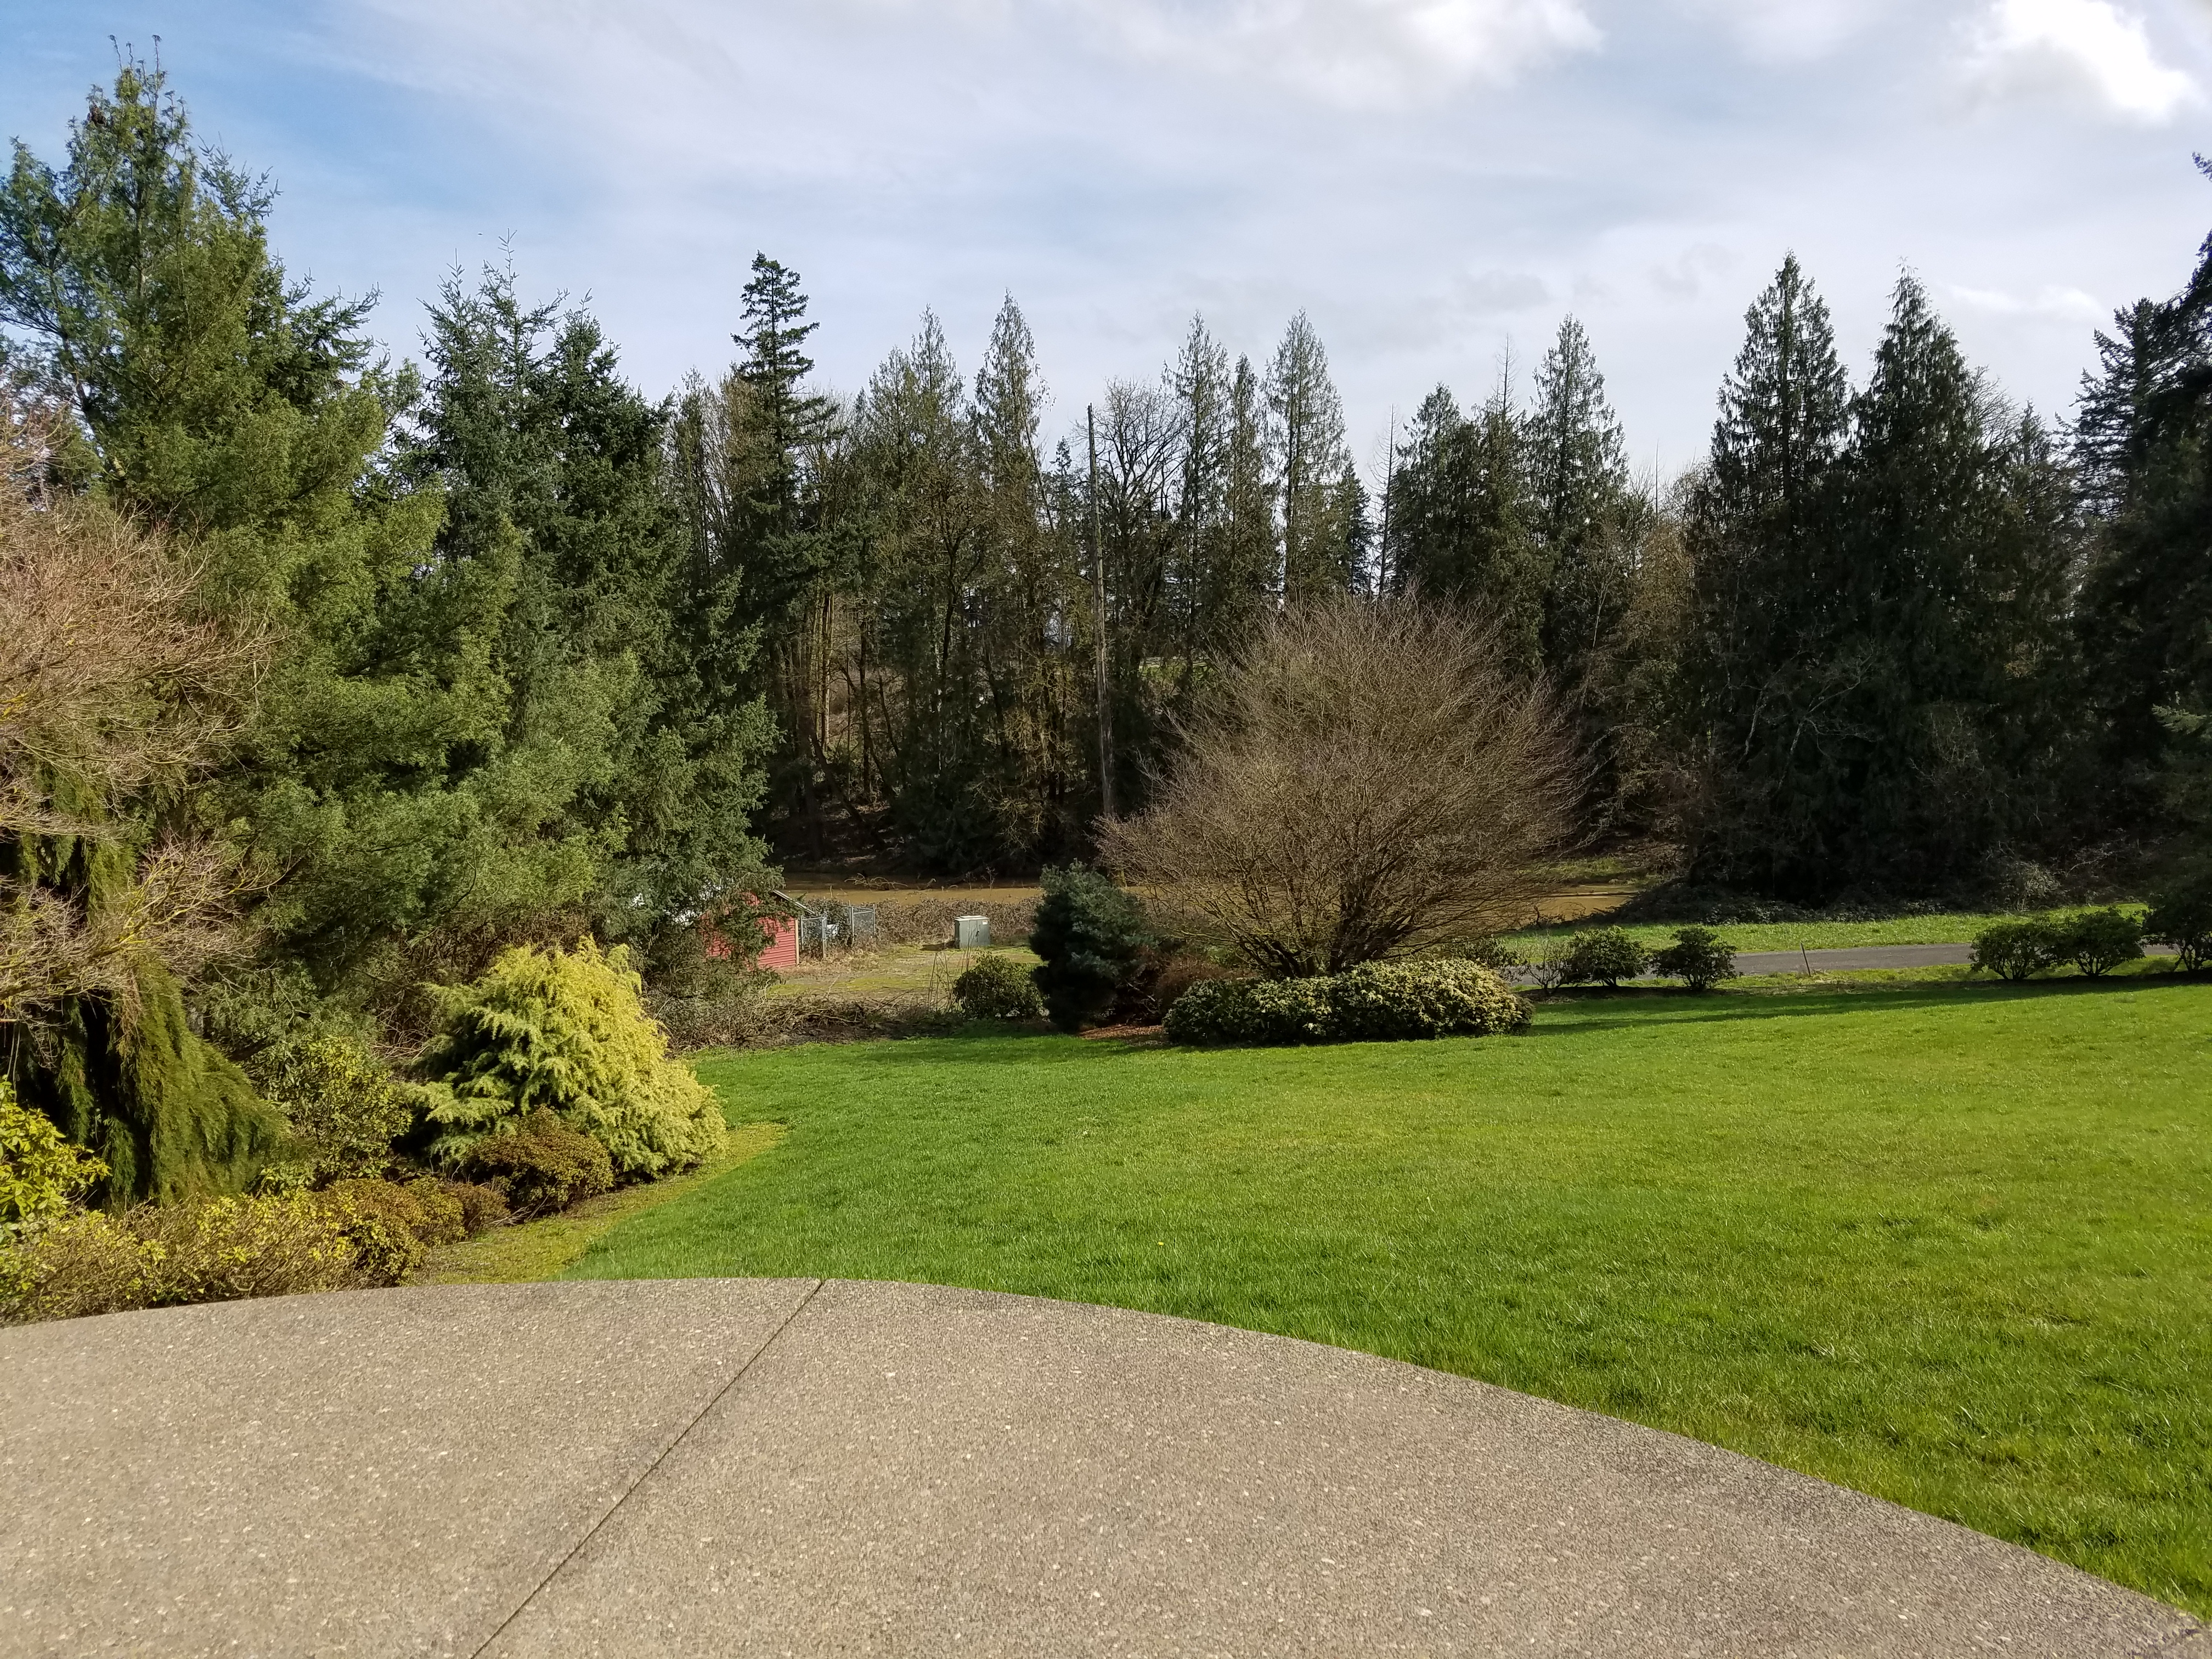 Willamette Valley Wedding Venue Low Cost Budget Discount Special Specials View Farm Forrest Wineries Wine